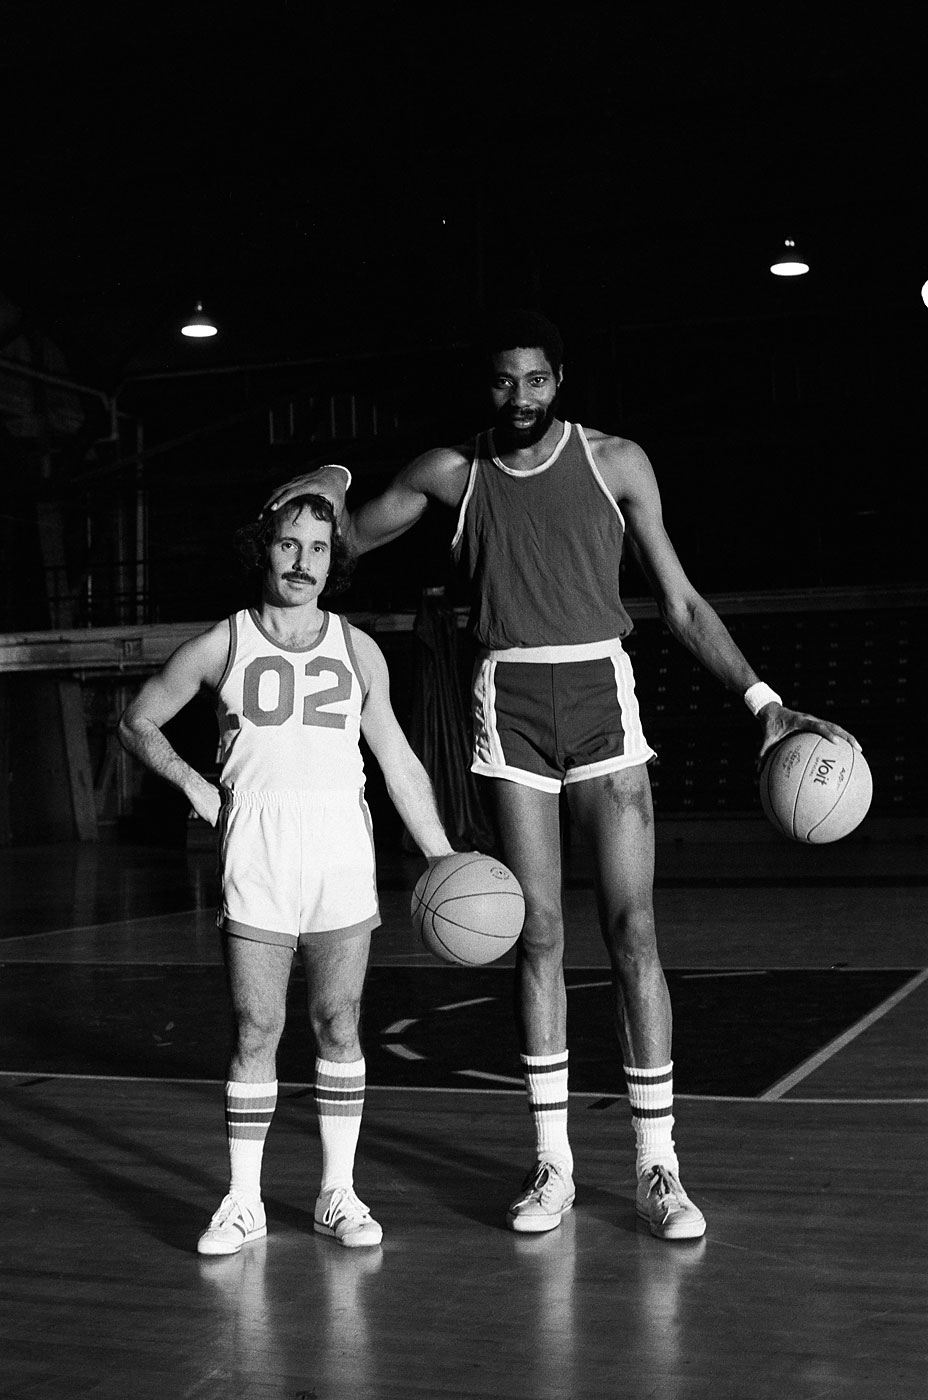 """Paul Simon and Connie Hawkins during the """"Paul Simon vs. Connie Hawkins"""" skit on October 18, 1975."""